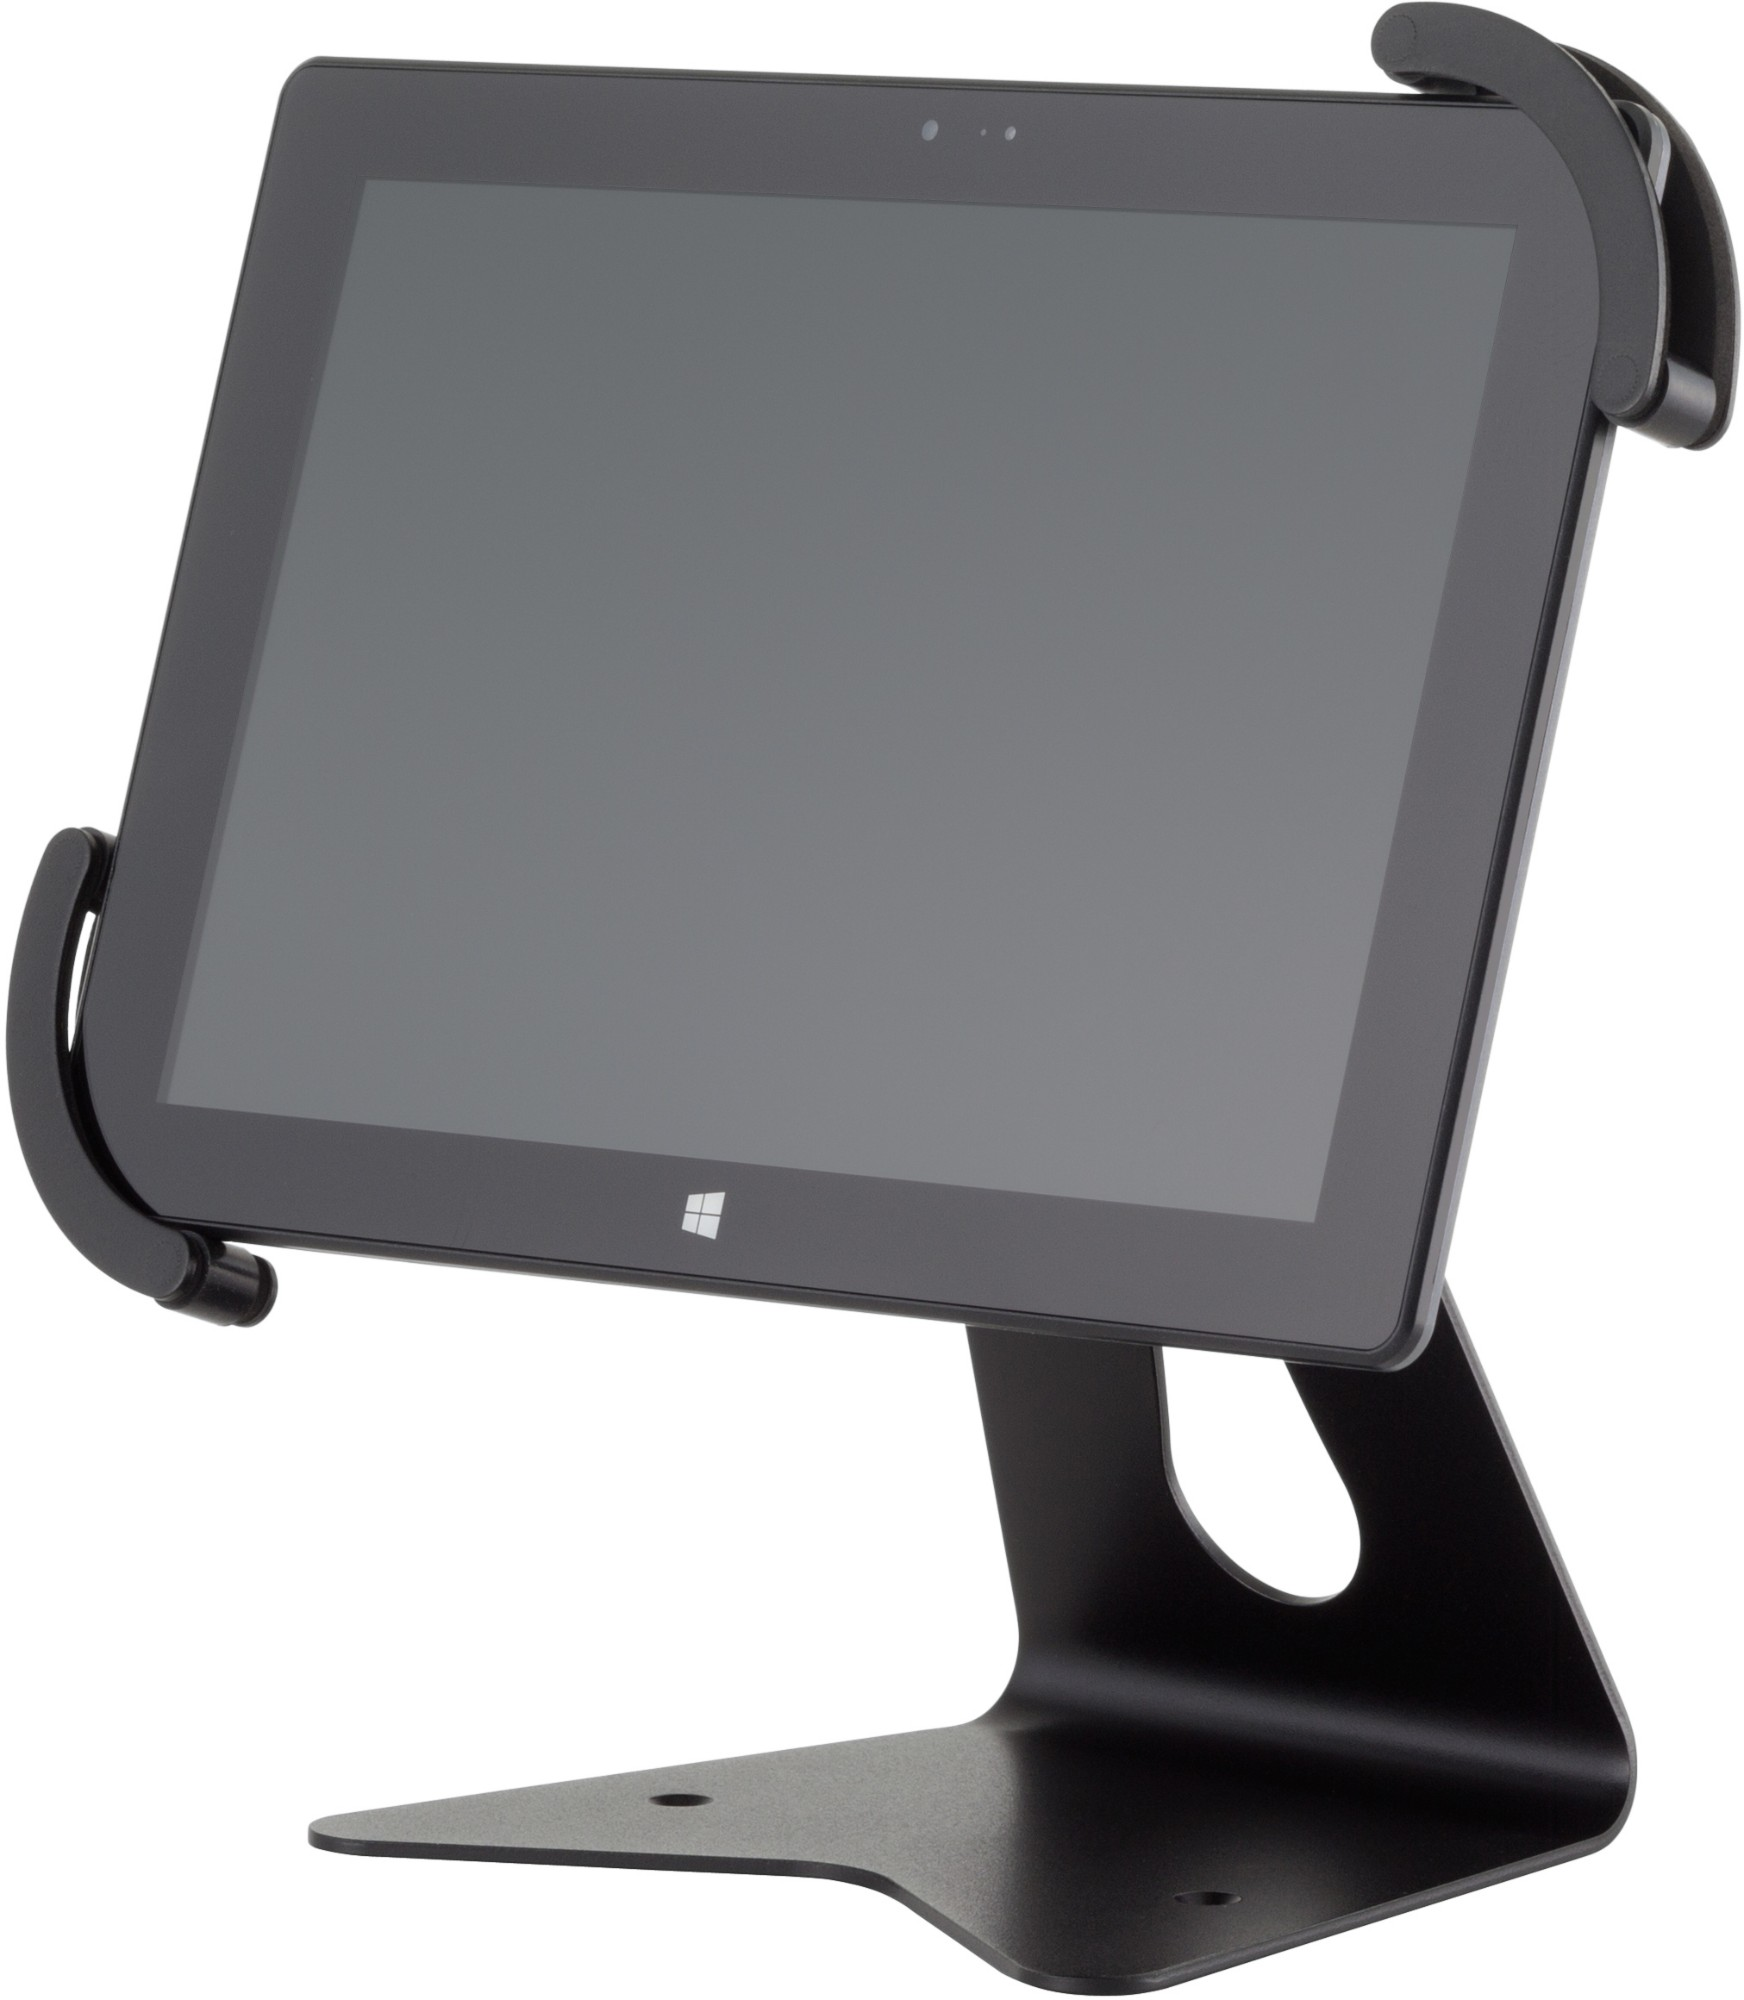 Tm-m30 Option Tablet Stand Black